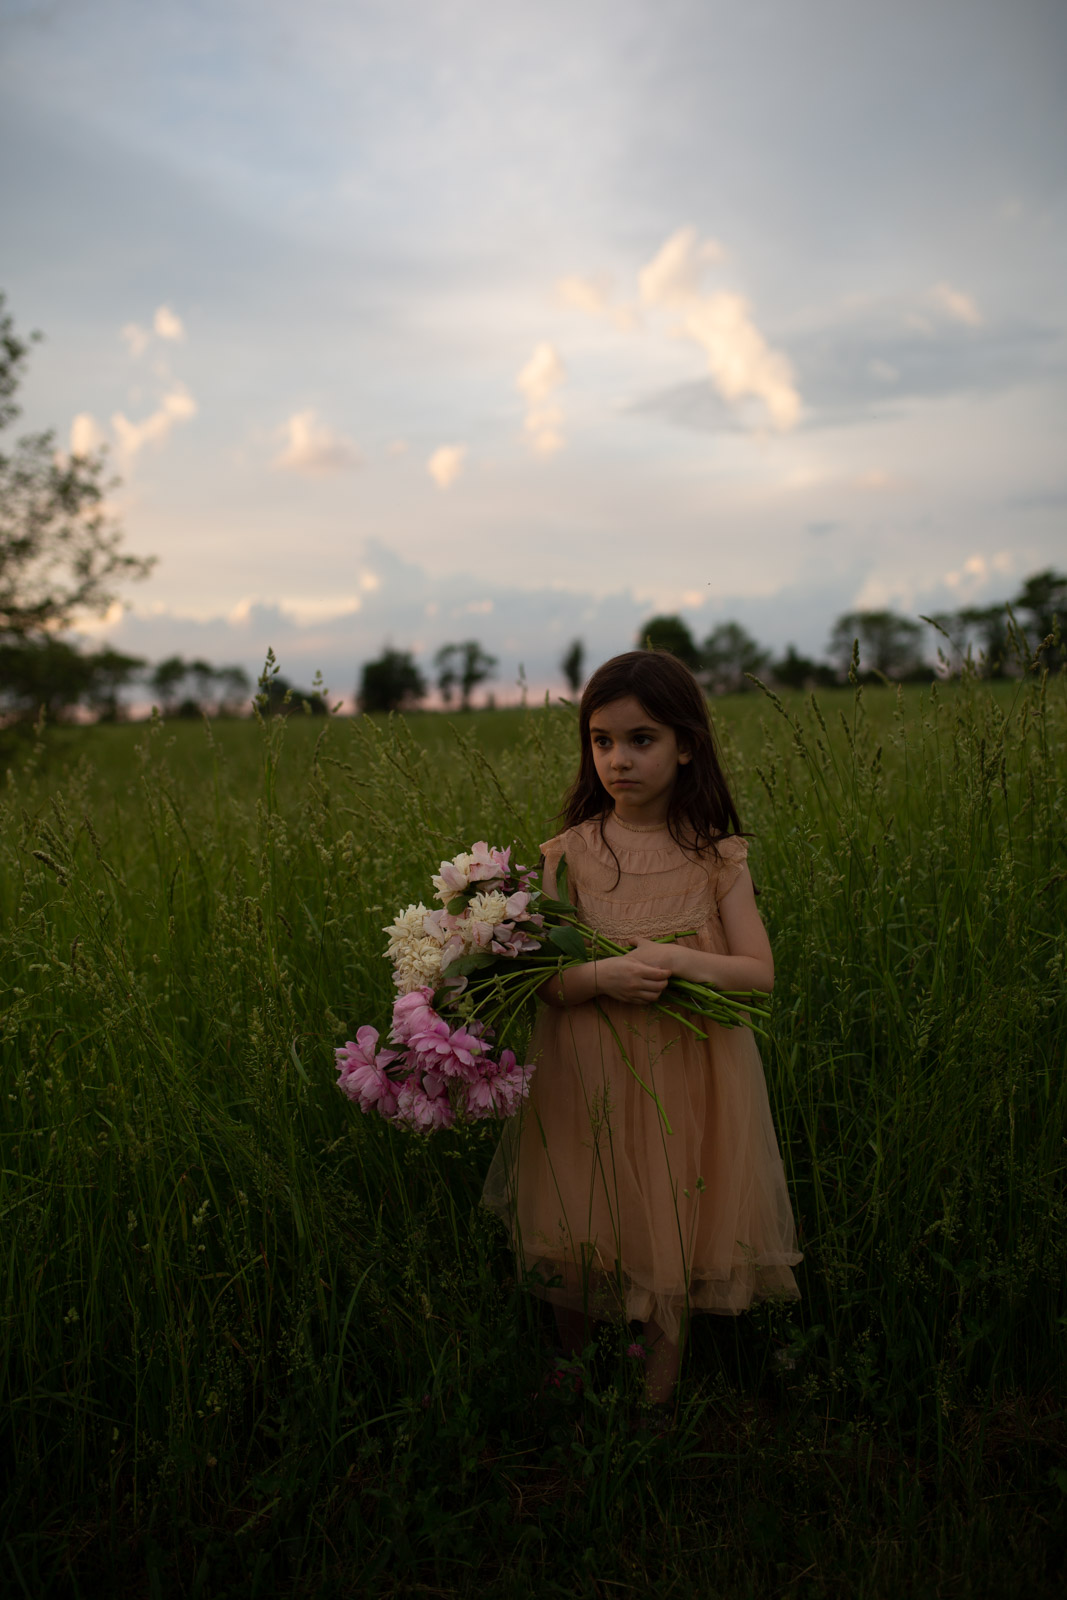 How to use off-camera flash for outdoor portraits